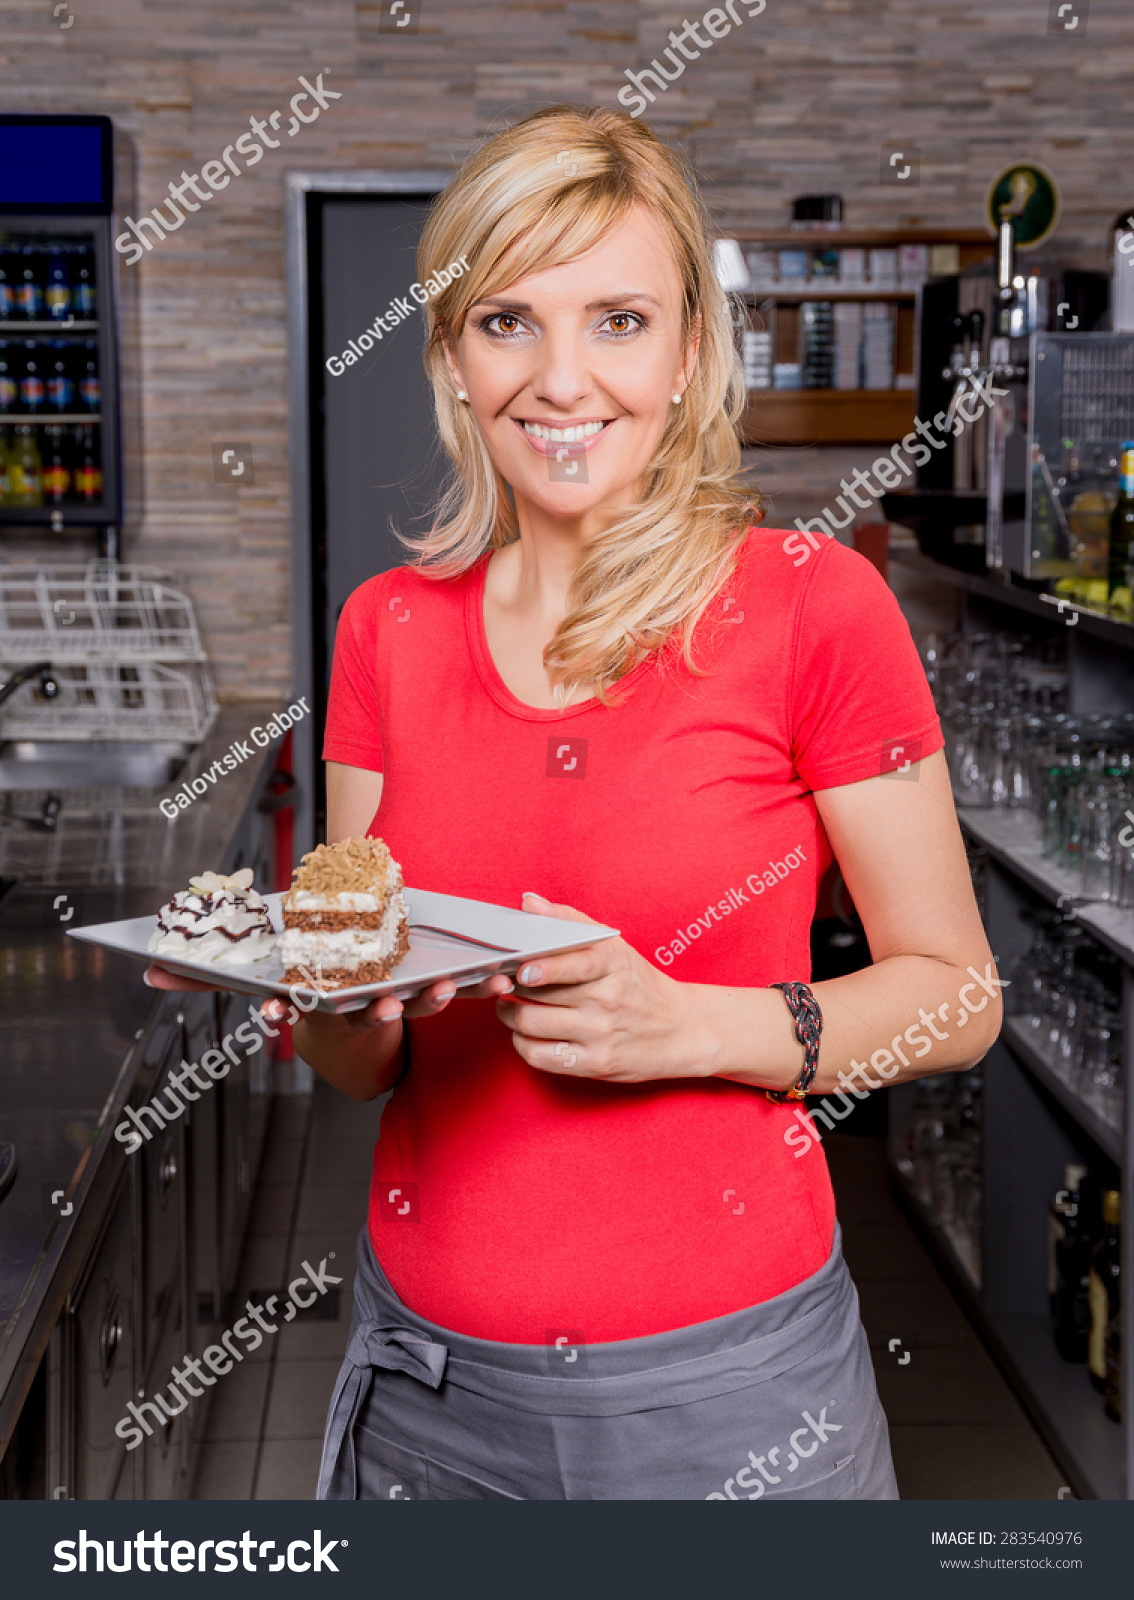 how to become a waitress at sur